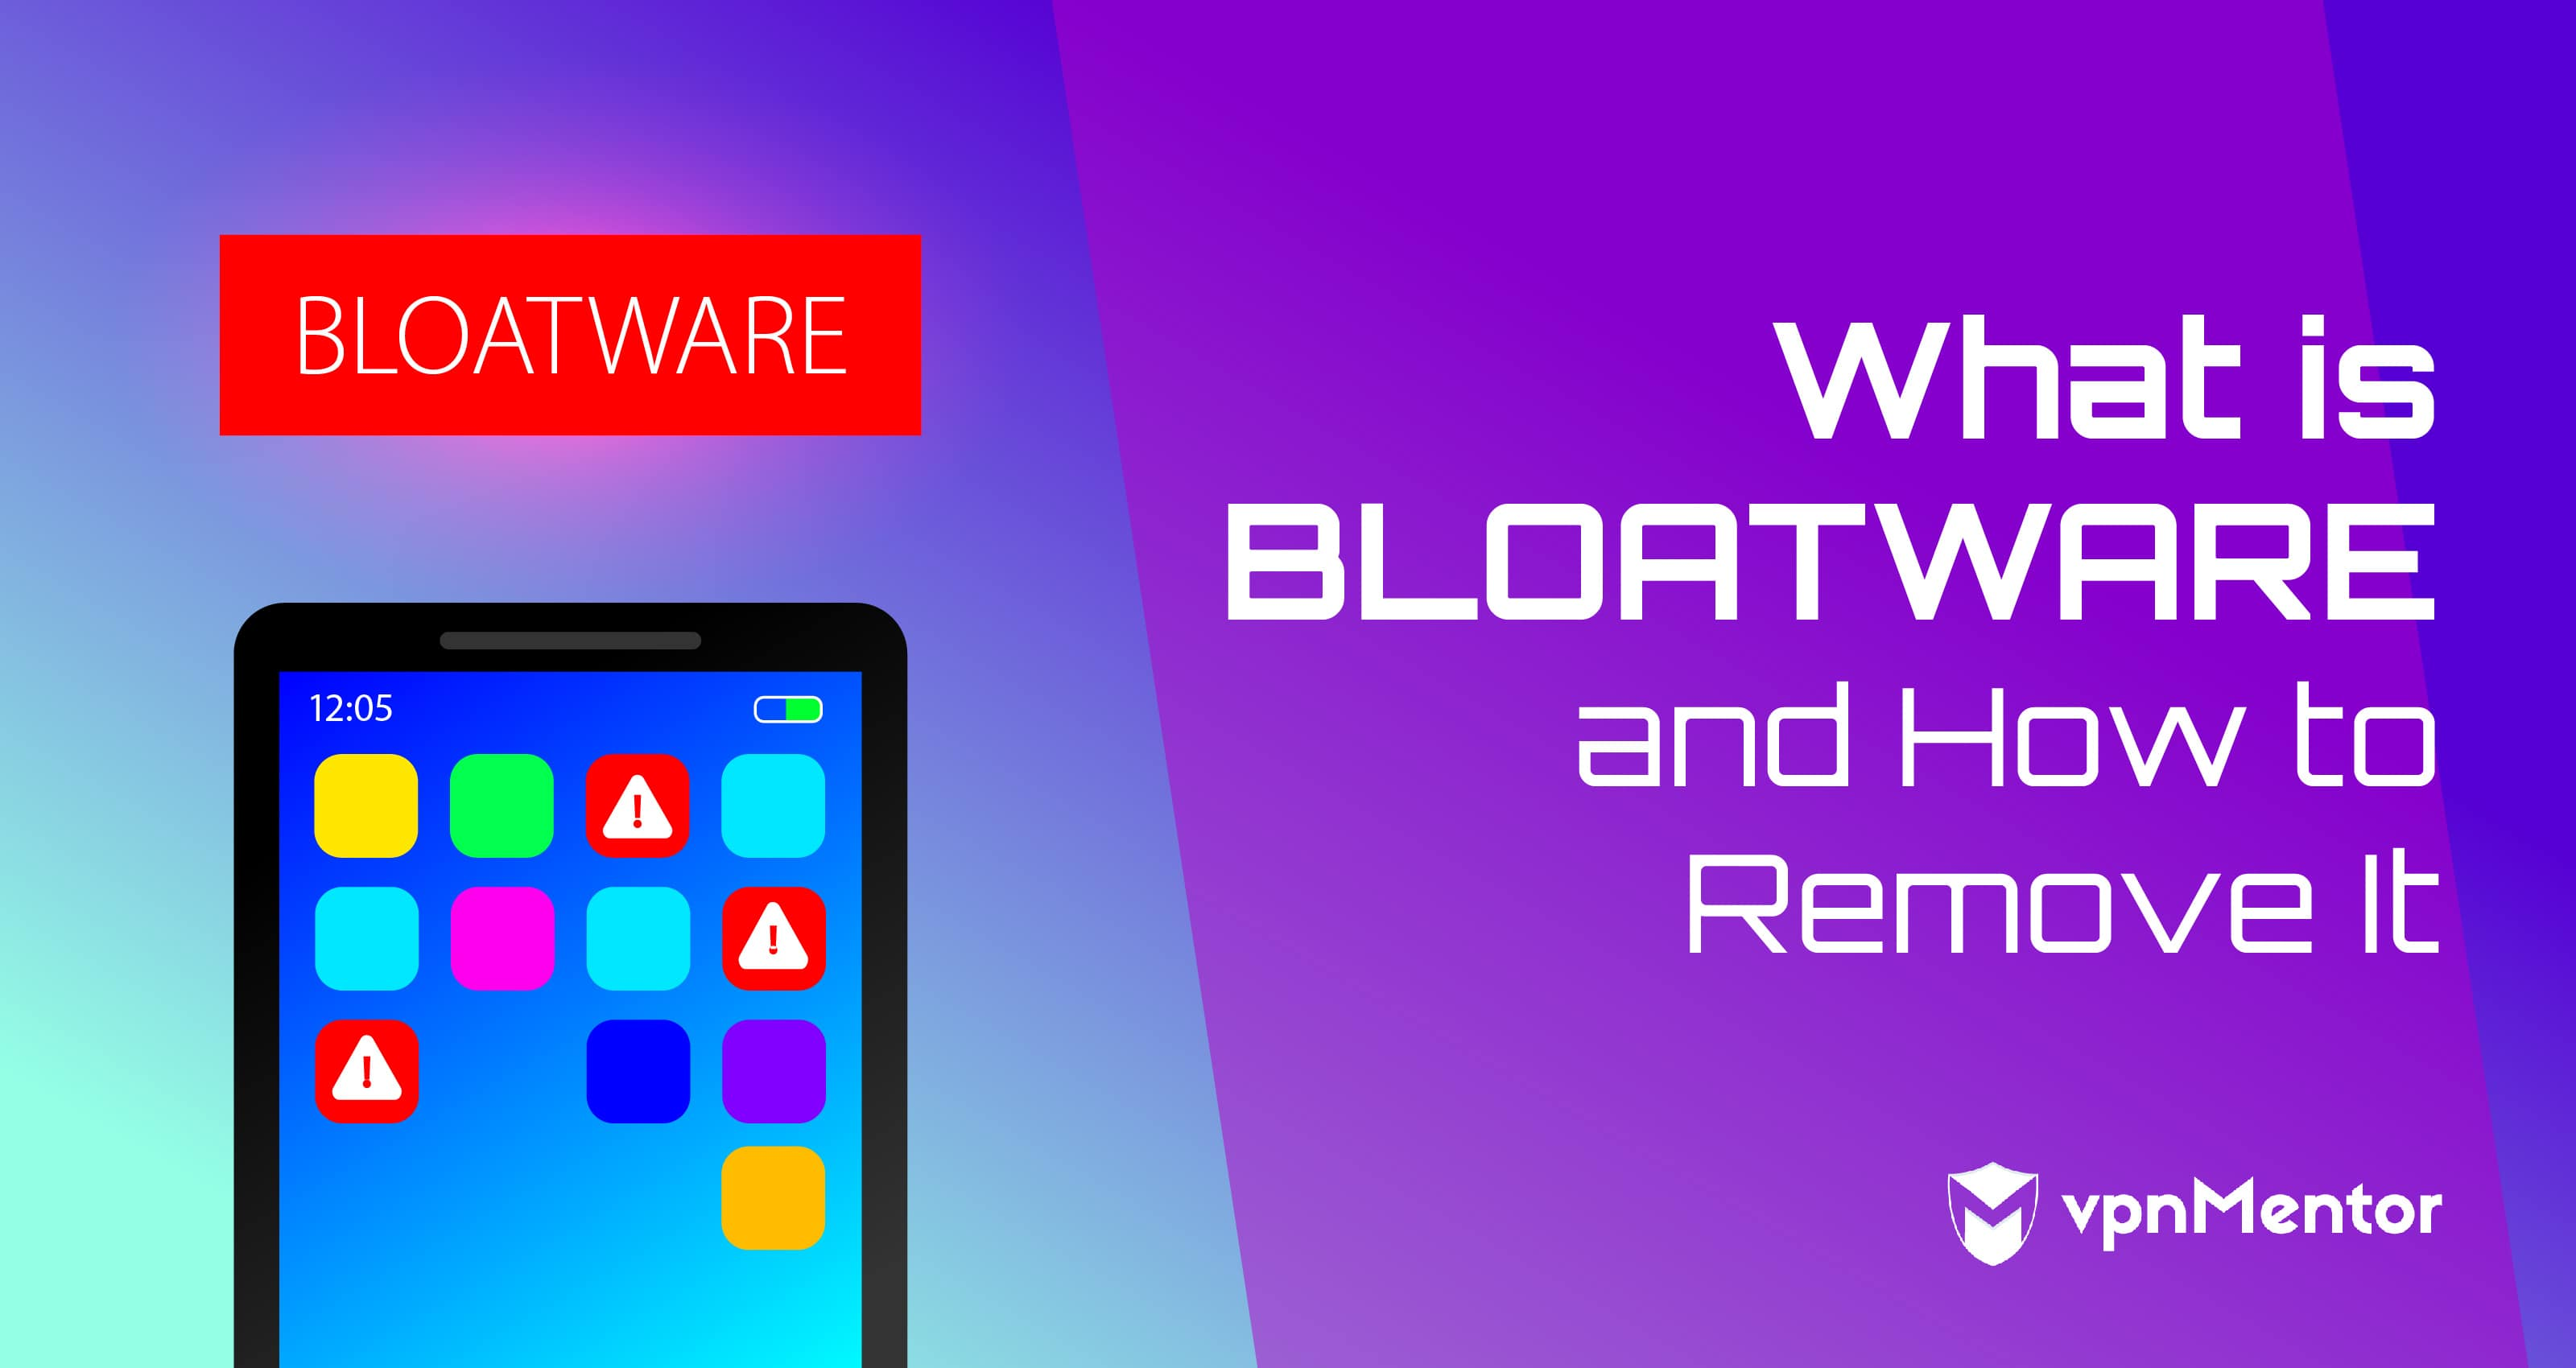 What is Bloatware?